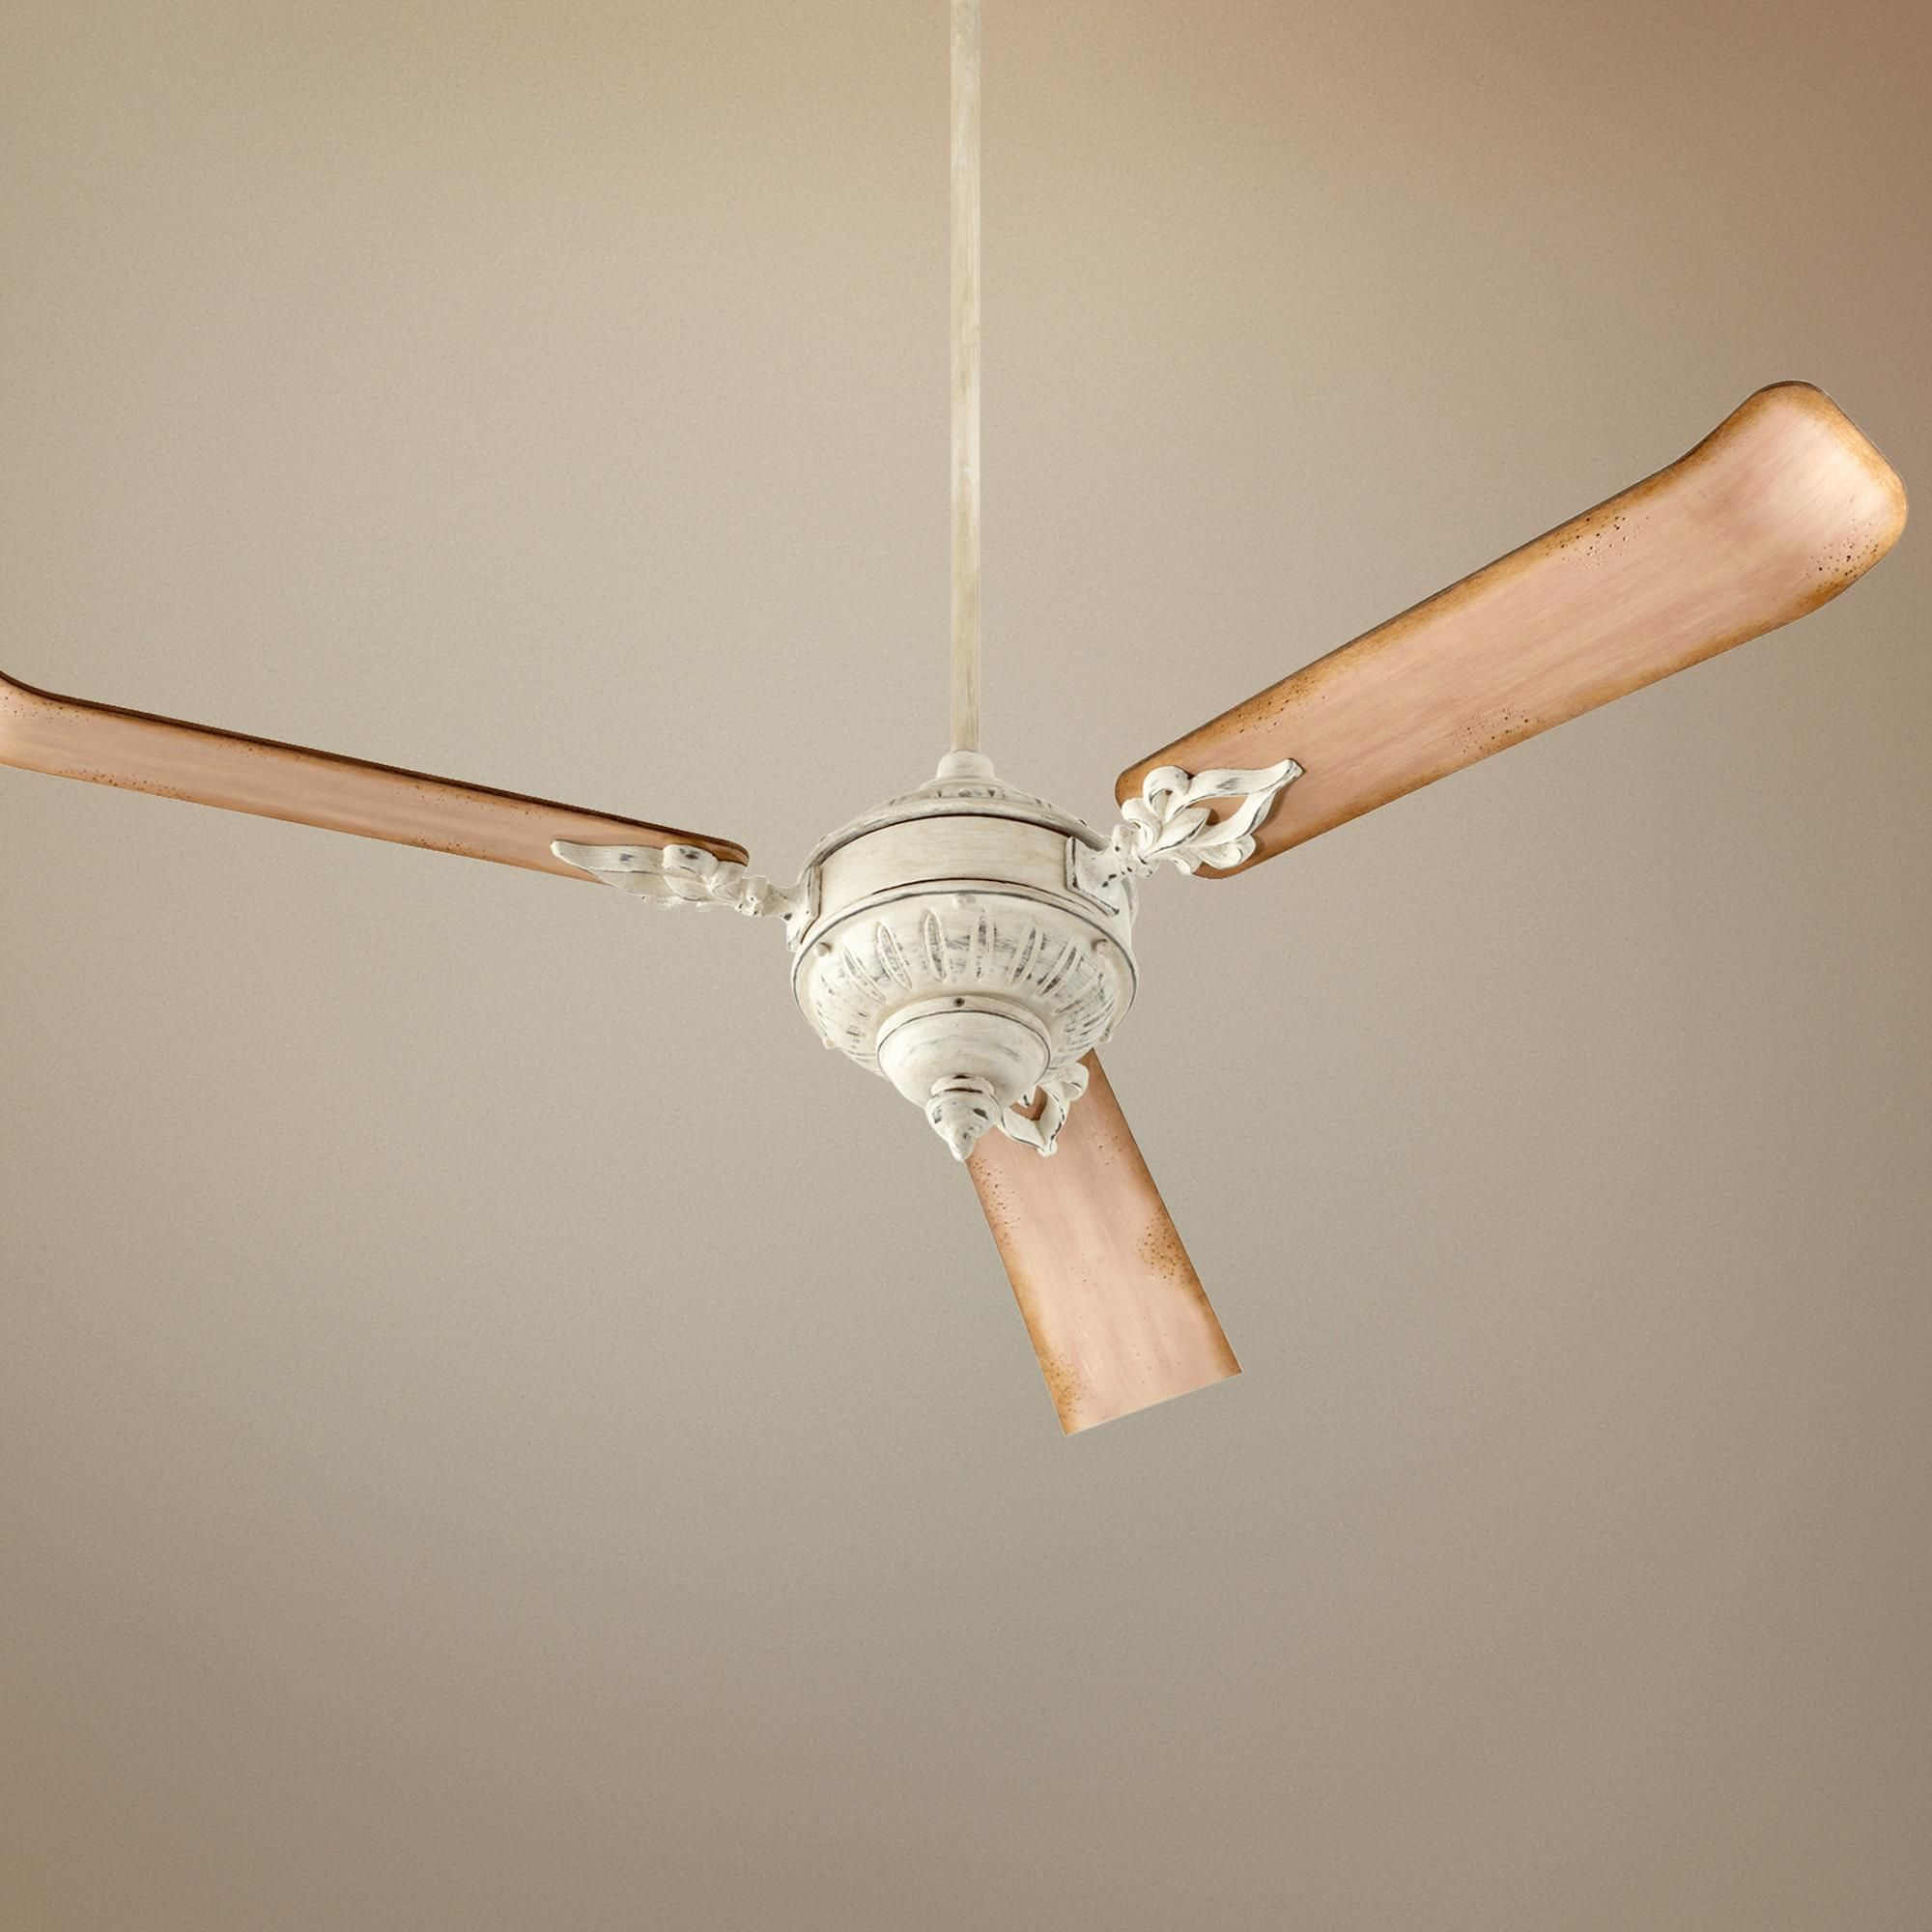 Ceiling Fans 60 Quorum Brewster Persian White Ceiling Fan In 2020 White Ceiling Fan White Ceiling Ceiling Fan